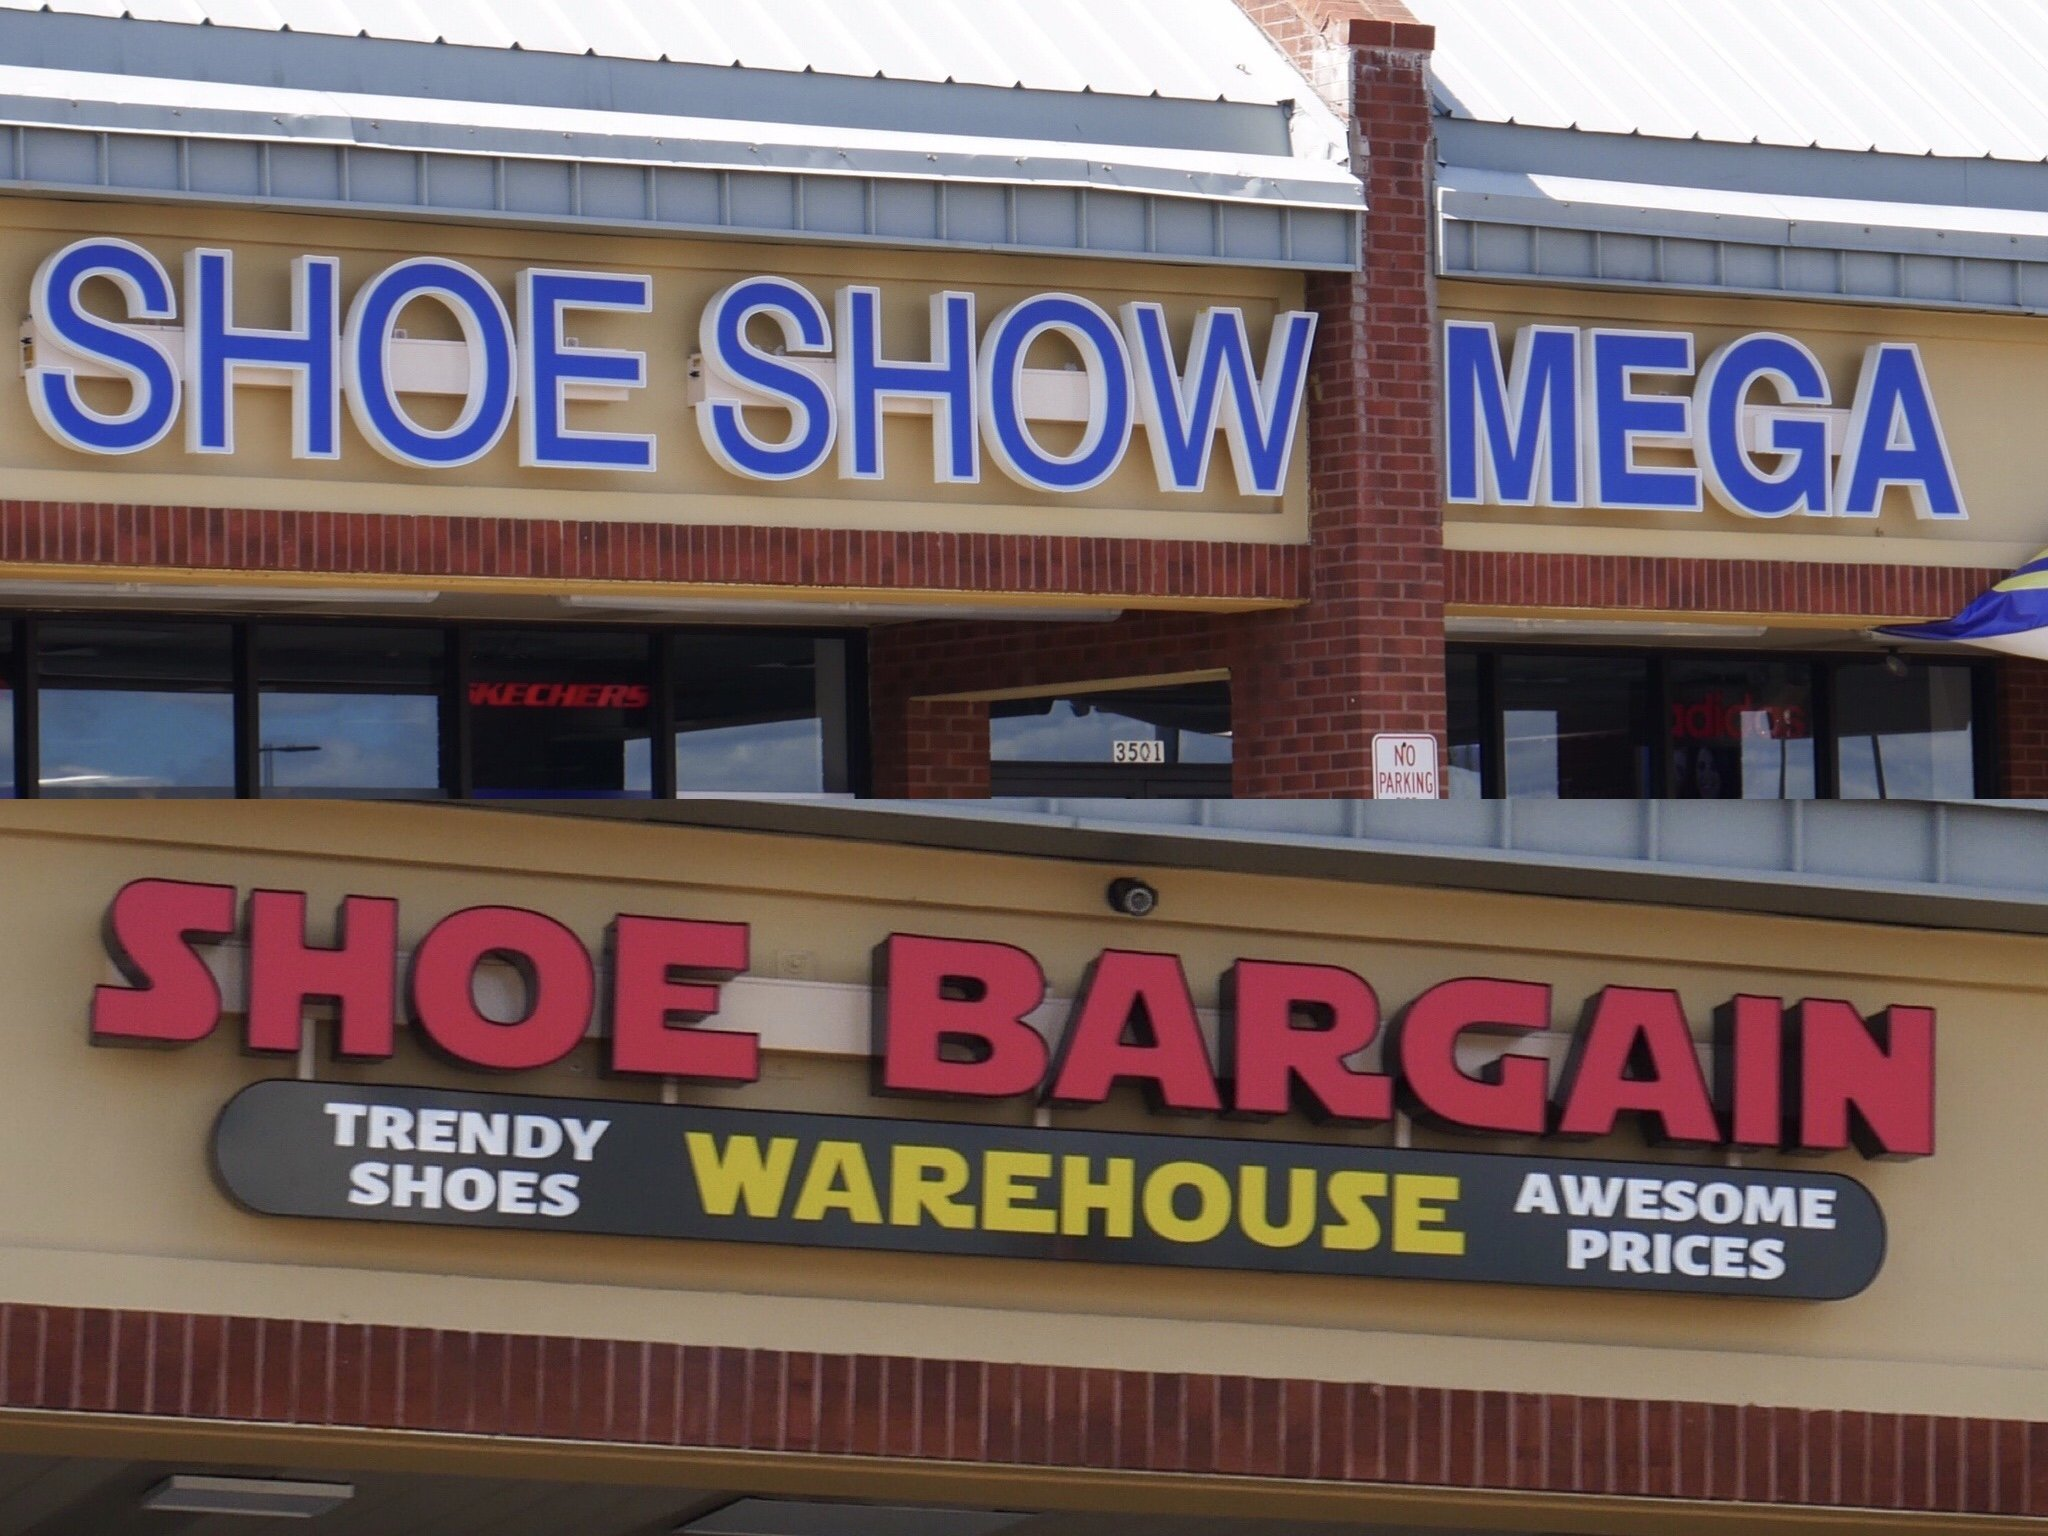 Shoe Show Mega opening at Turnersville's Walmart Cross Keys Commons Center.  And Don't Forget Shoe Bargain Warehouse!